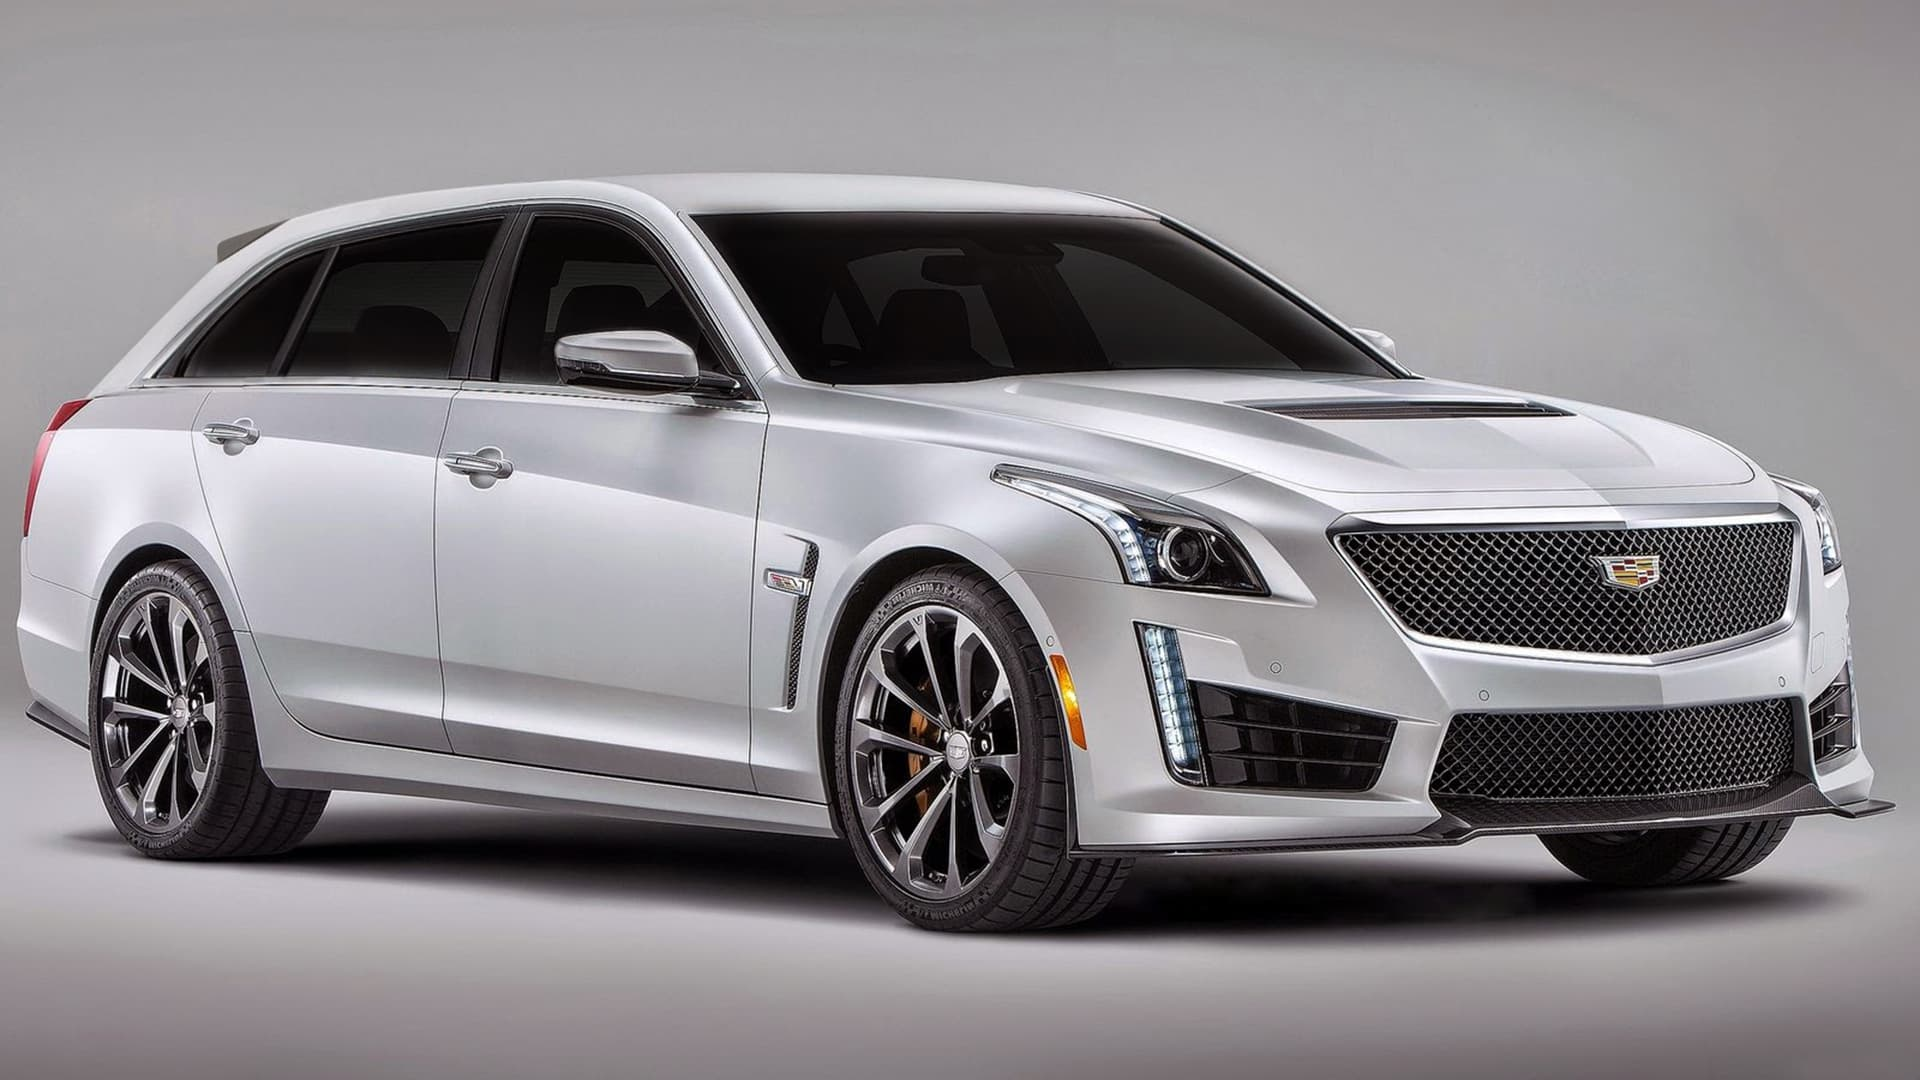 2016 cadillac cts v wagon 1080p. Black Bedroom Furniture Sets. Home Design Ideas